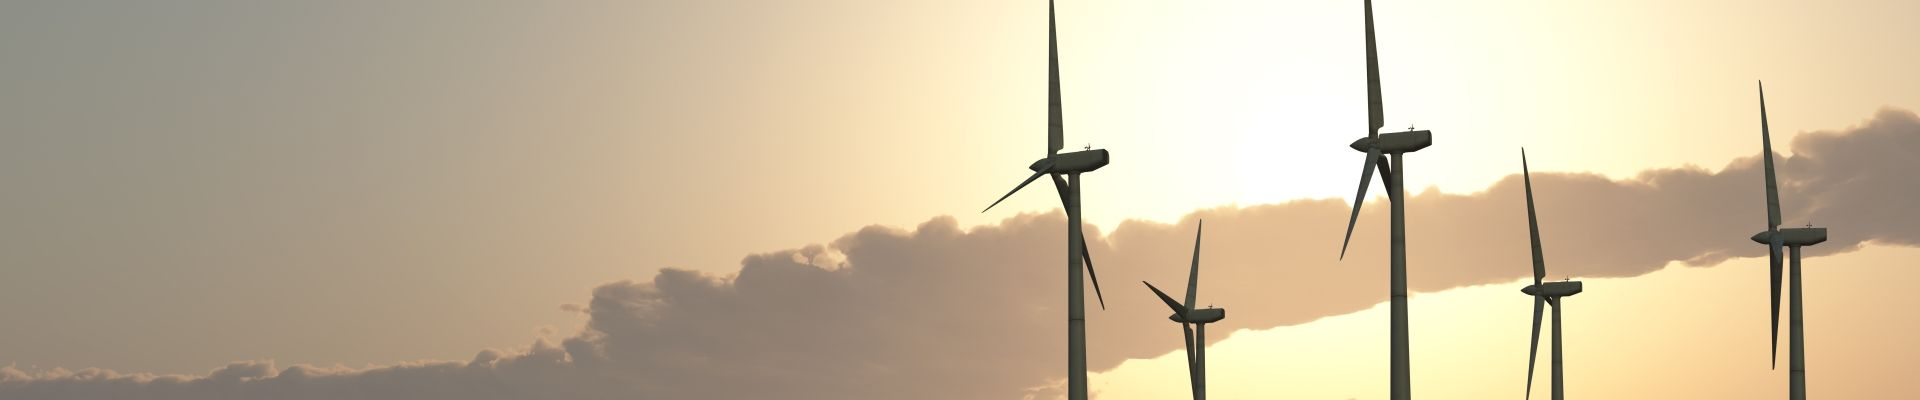 Renewable energies in South America use Virtual Power Plant